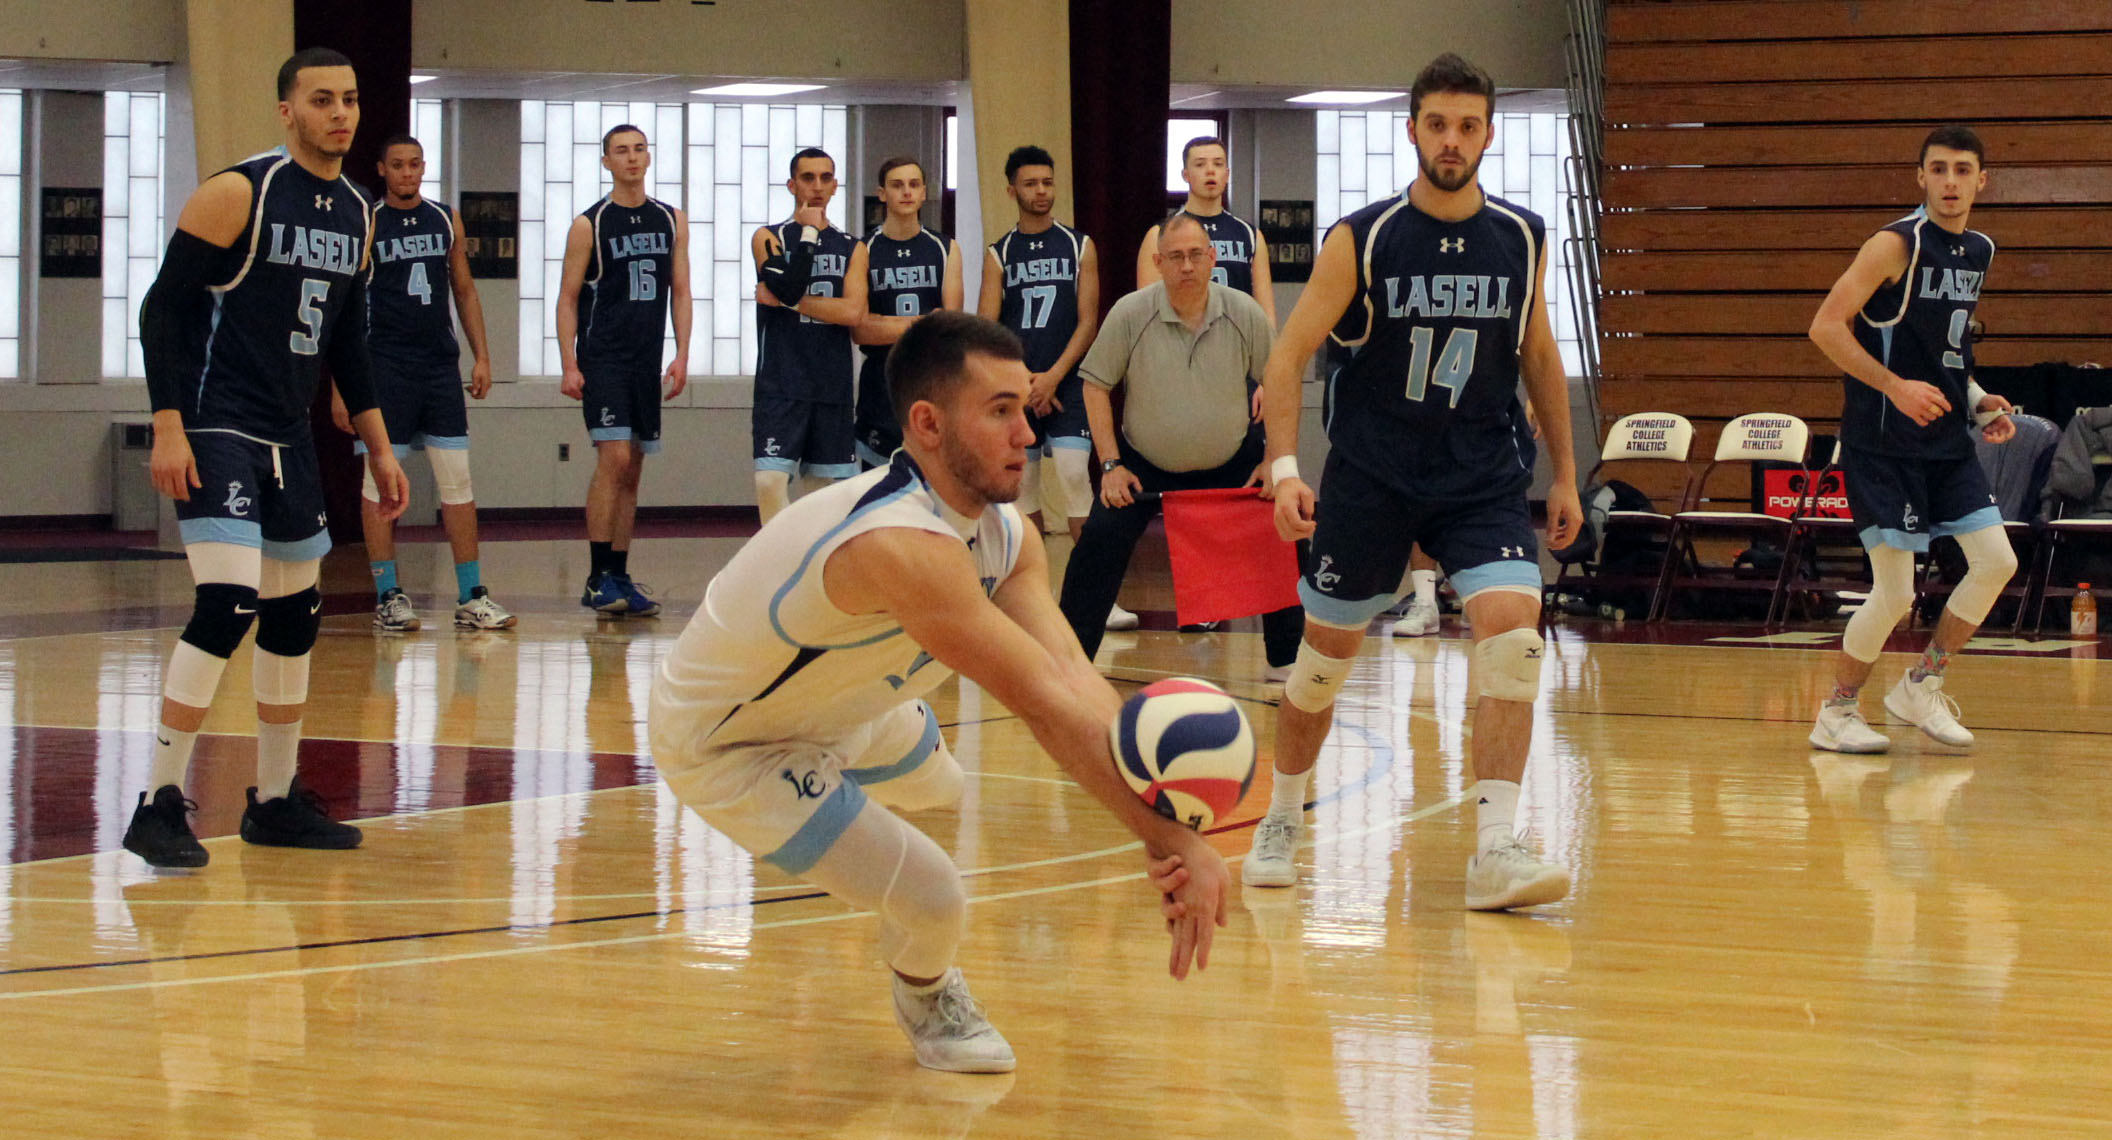 Lasell Men's Volleyball falls to Endicott